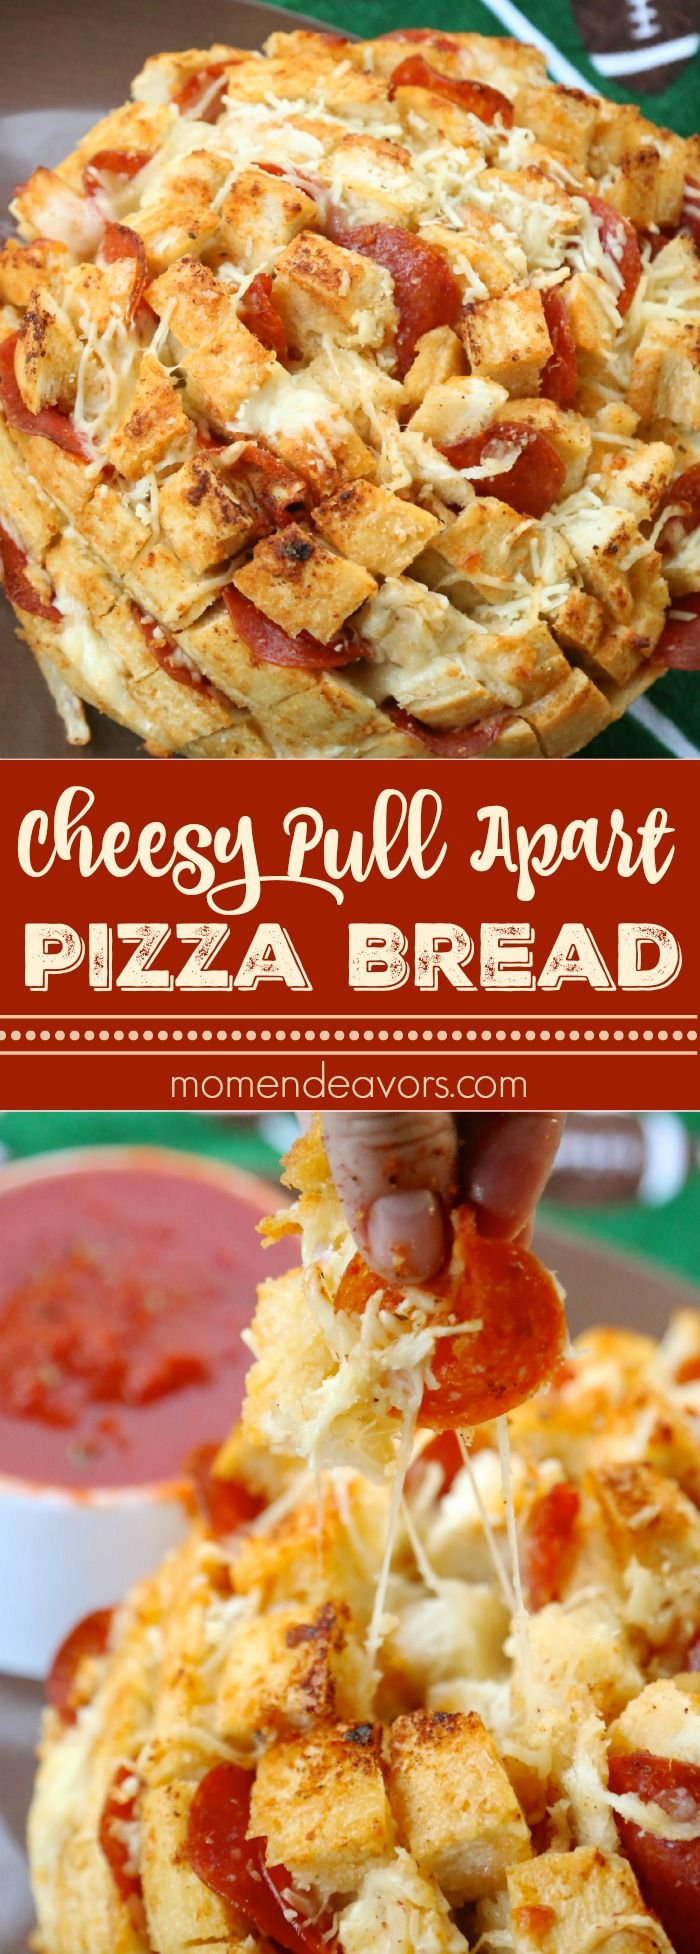 Cheesy Pull Apart Pizza Bread - so easy to make and SO good!